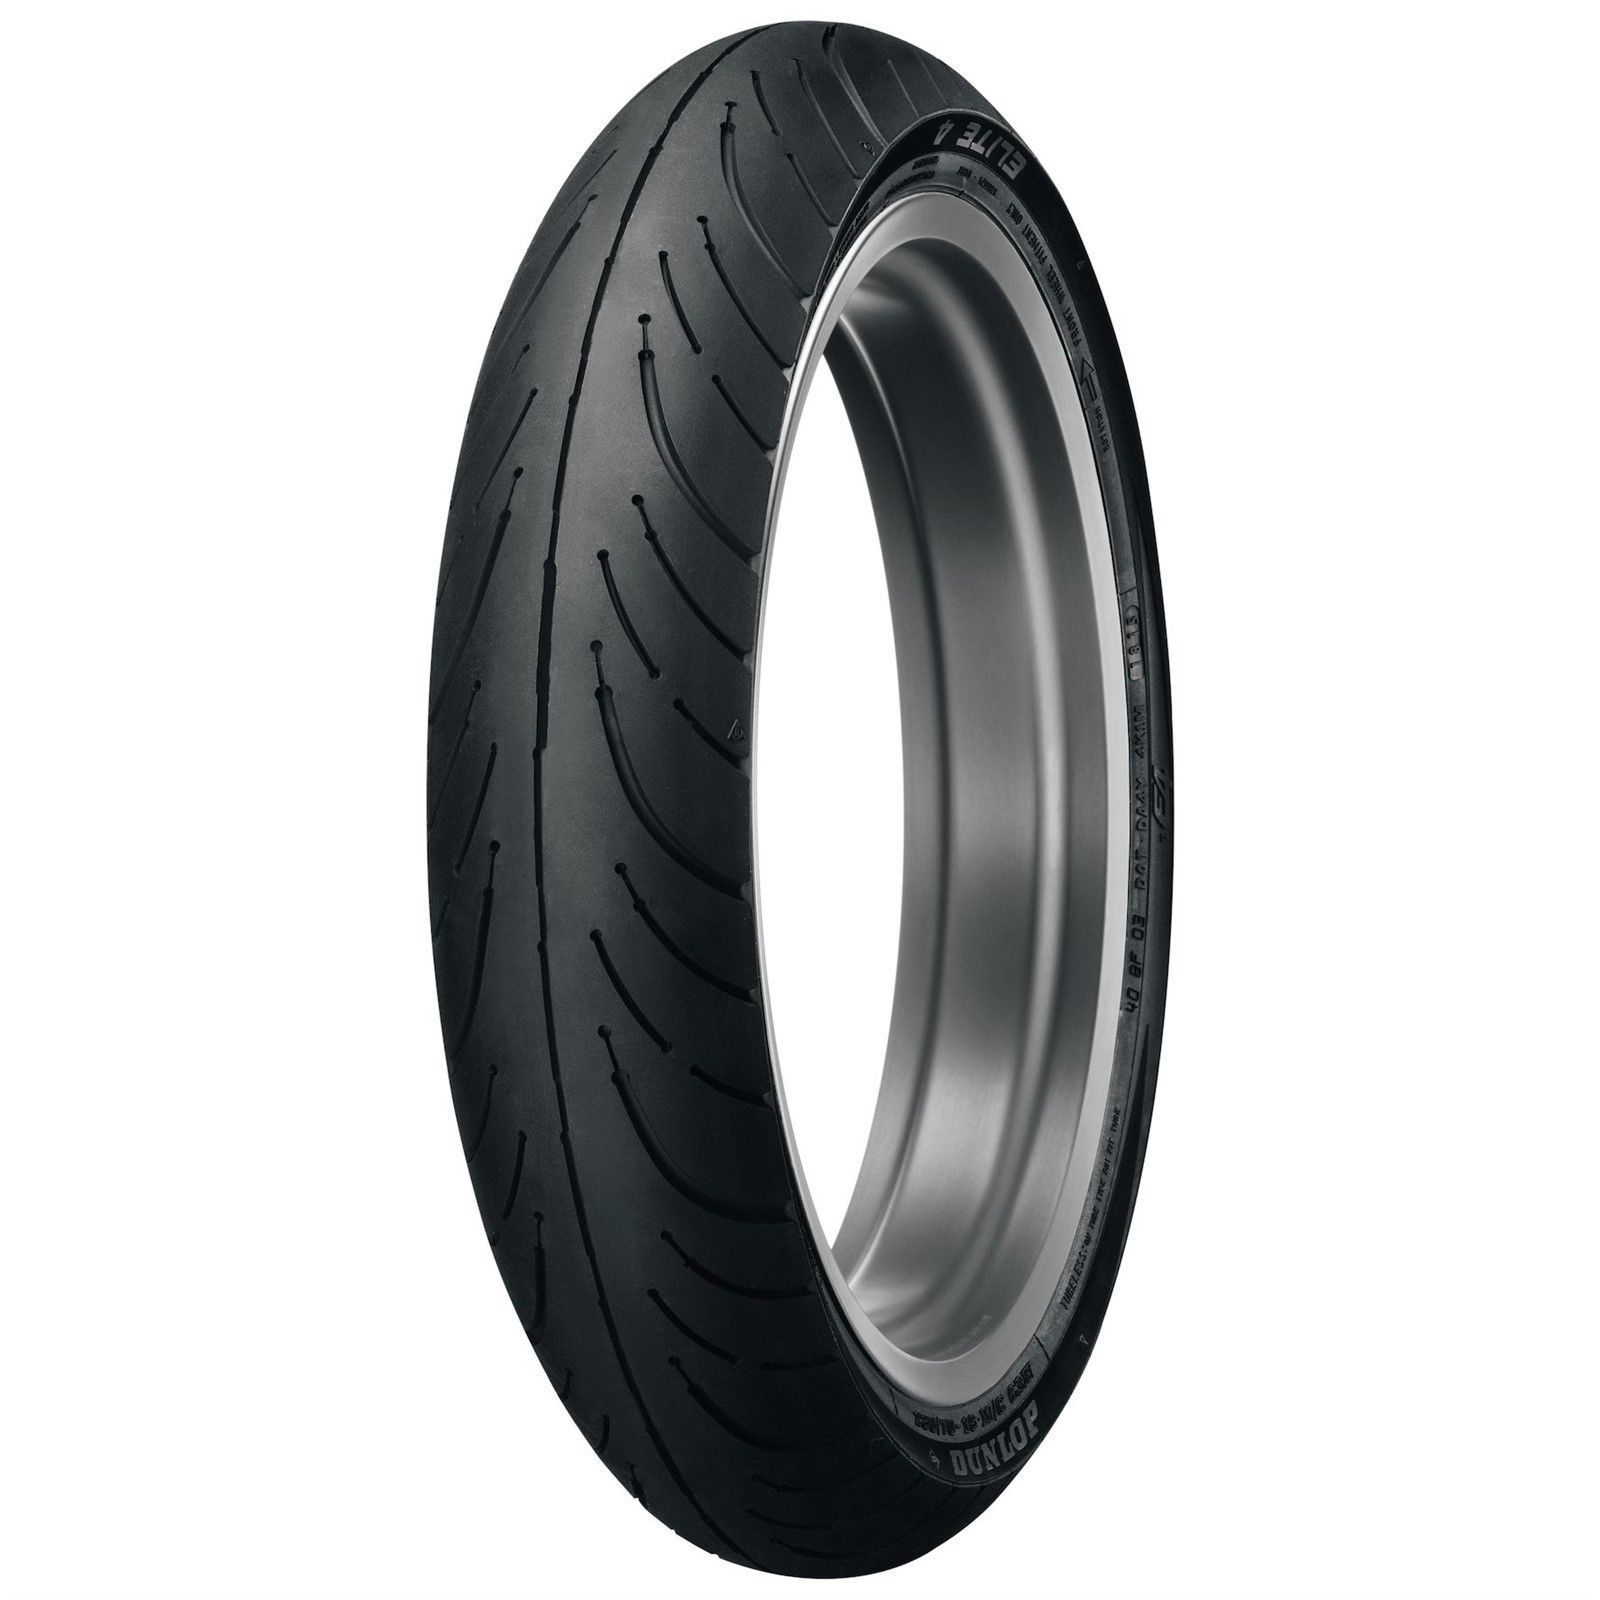 New Dunlop Elite 4 120/90-17 Bias Front Motorcycle Tire 64S High Mileage